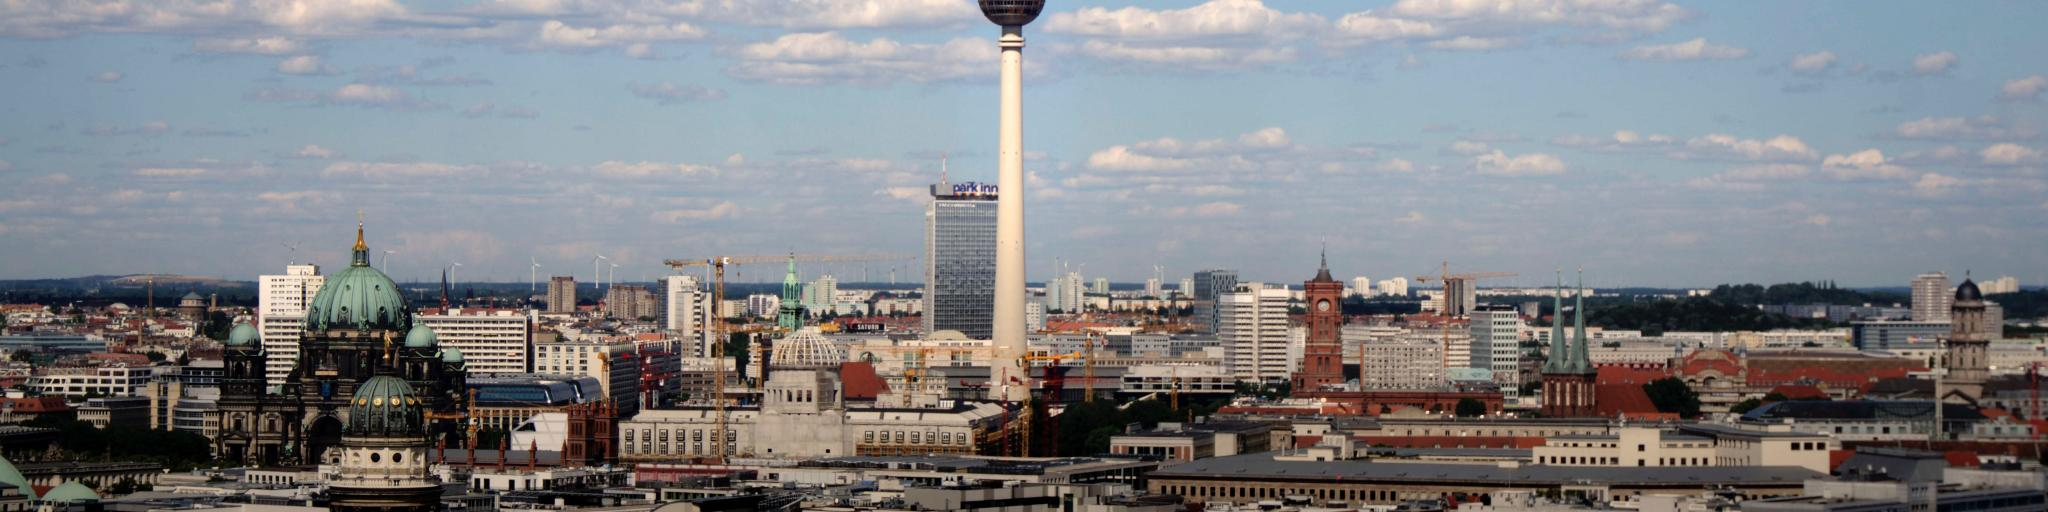 The Fernsehturm TV tower stands out in the skyline of Berlin